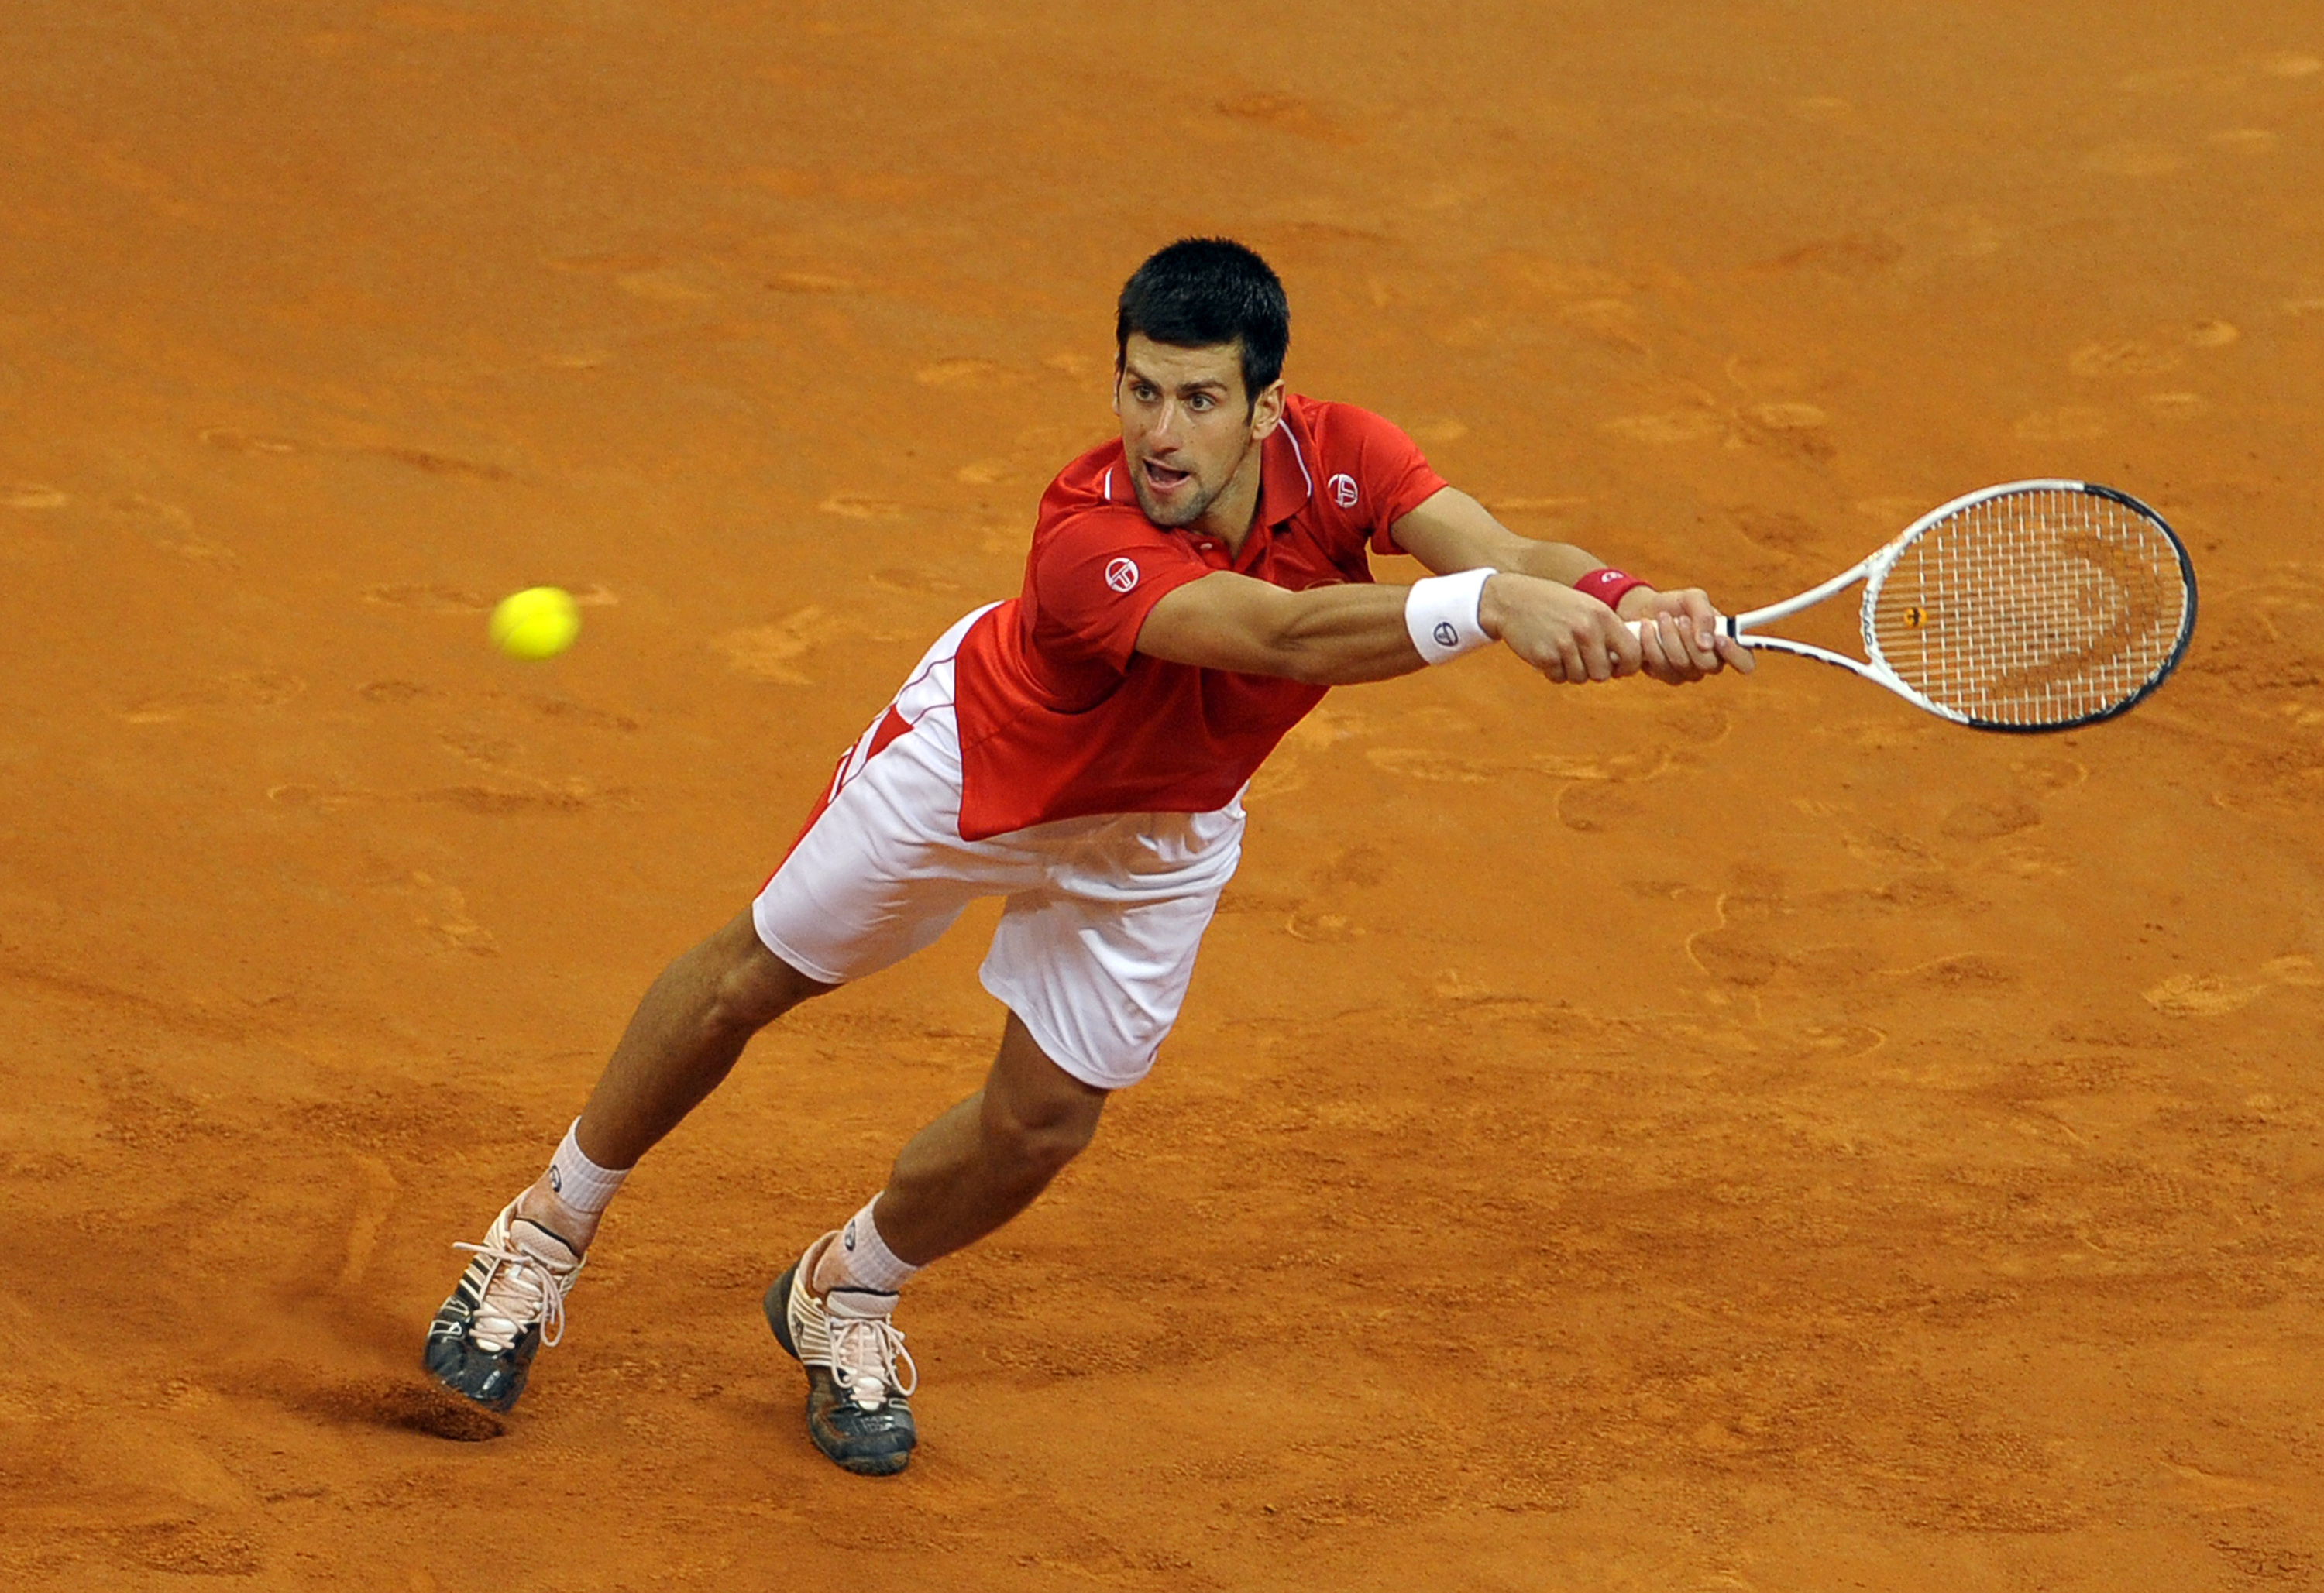 The Serb looked good in red on the clay in the Davis Cup.